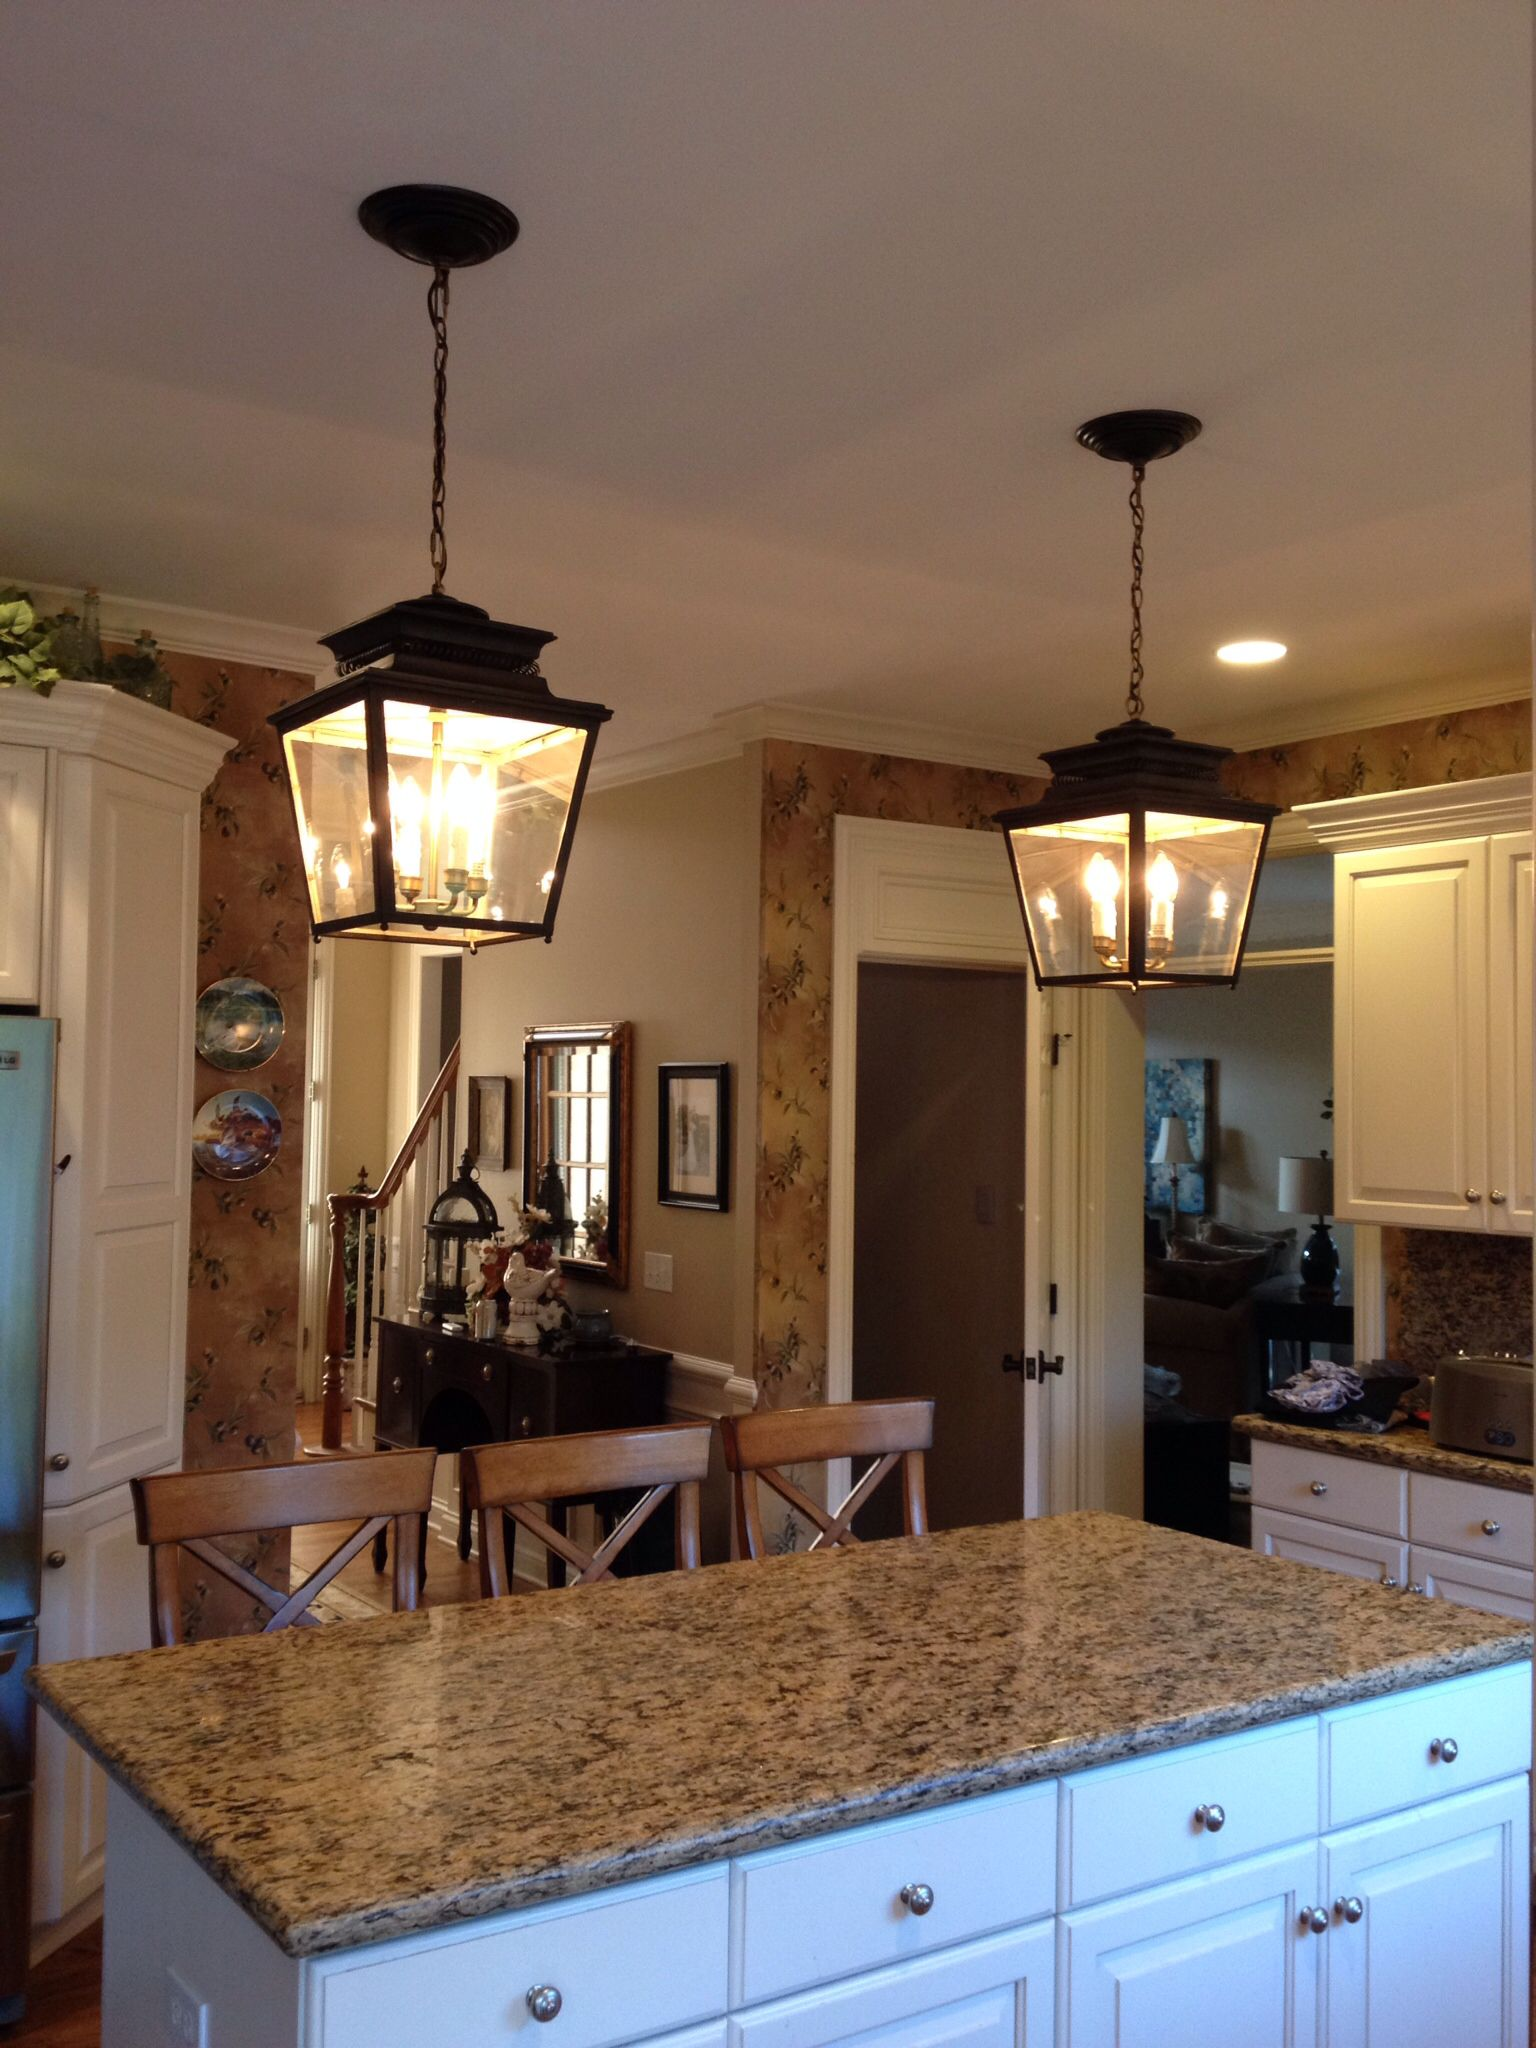 Lantern Lights Over Kitchen Island Lantern Lights Ballard Designs Piedmont Lanterns Over My Island